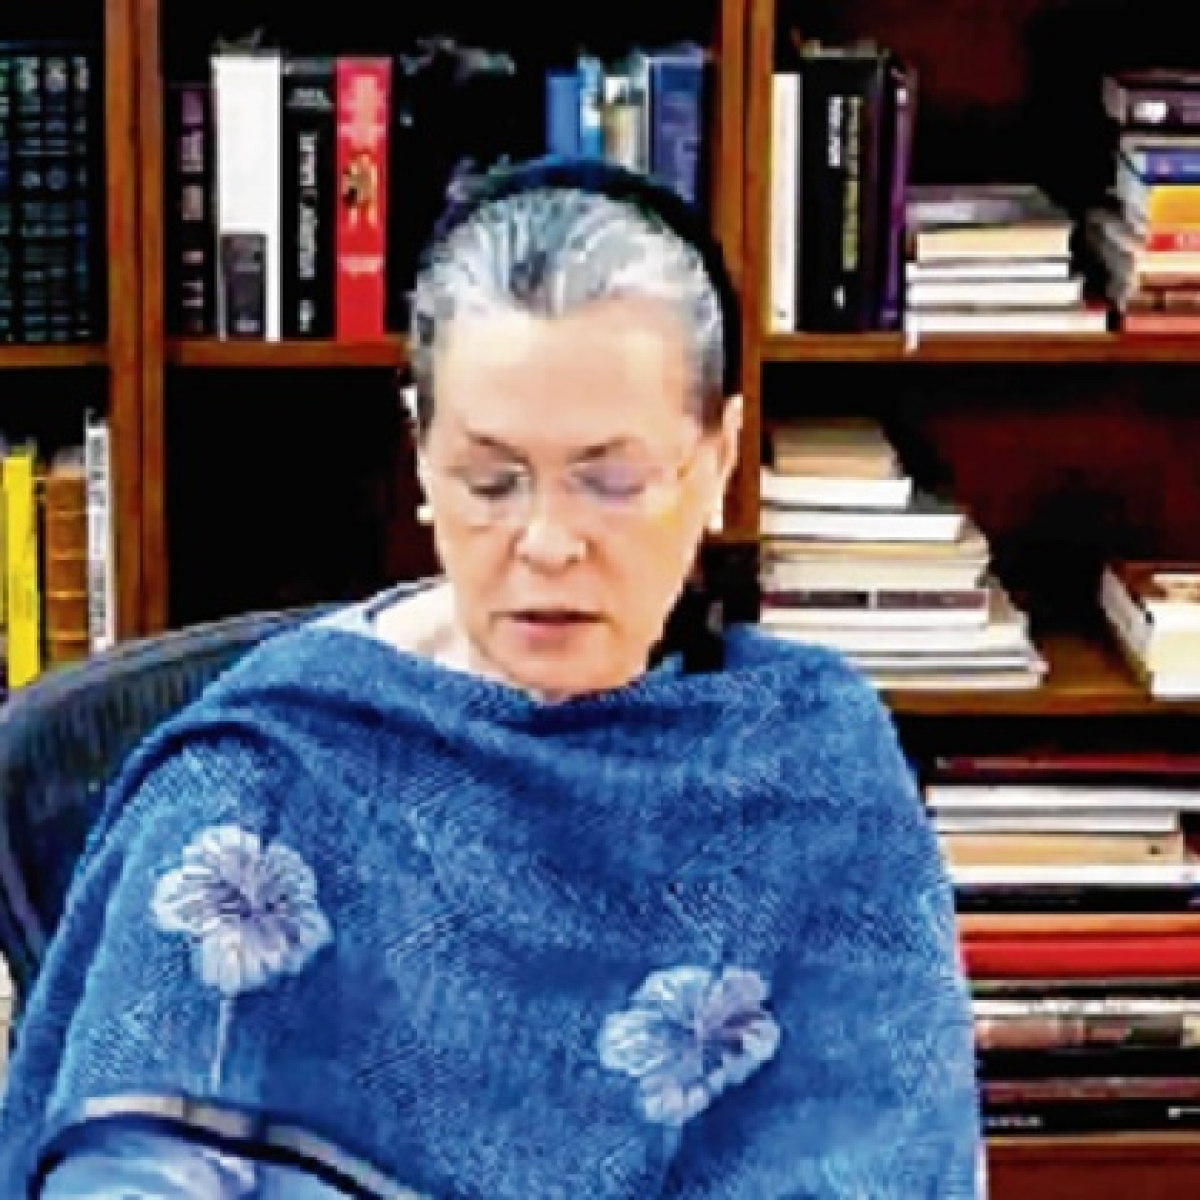 Listen to student voices, act as per their wishes: Sonia Gandhi to govt on NEET, JEE